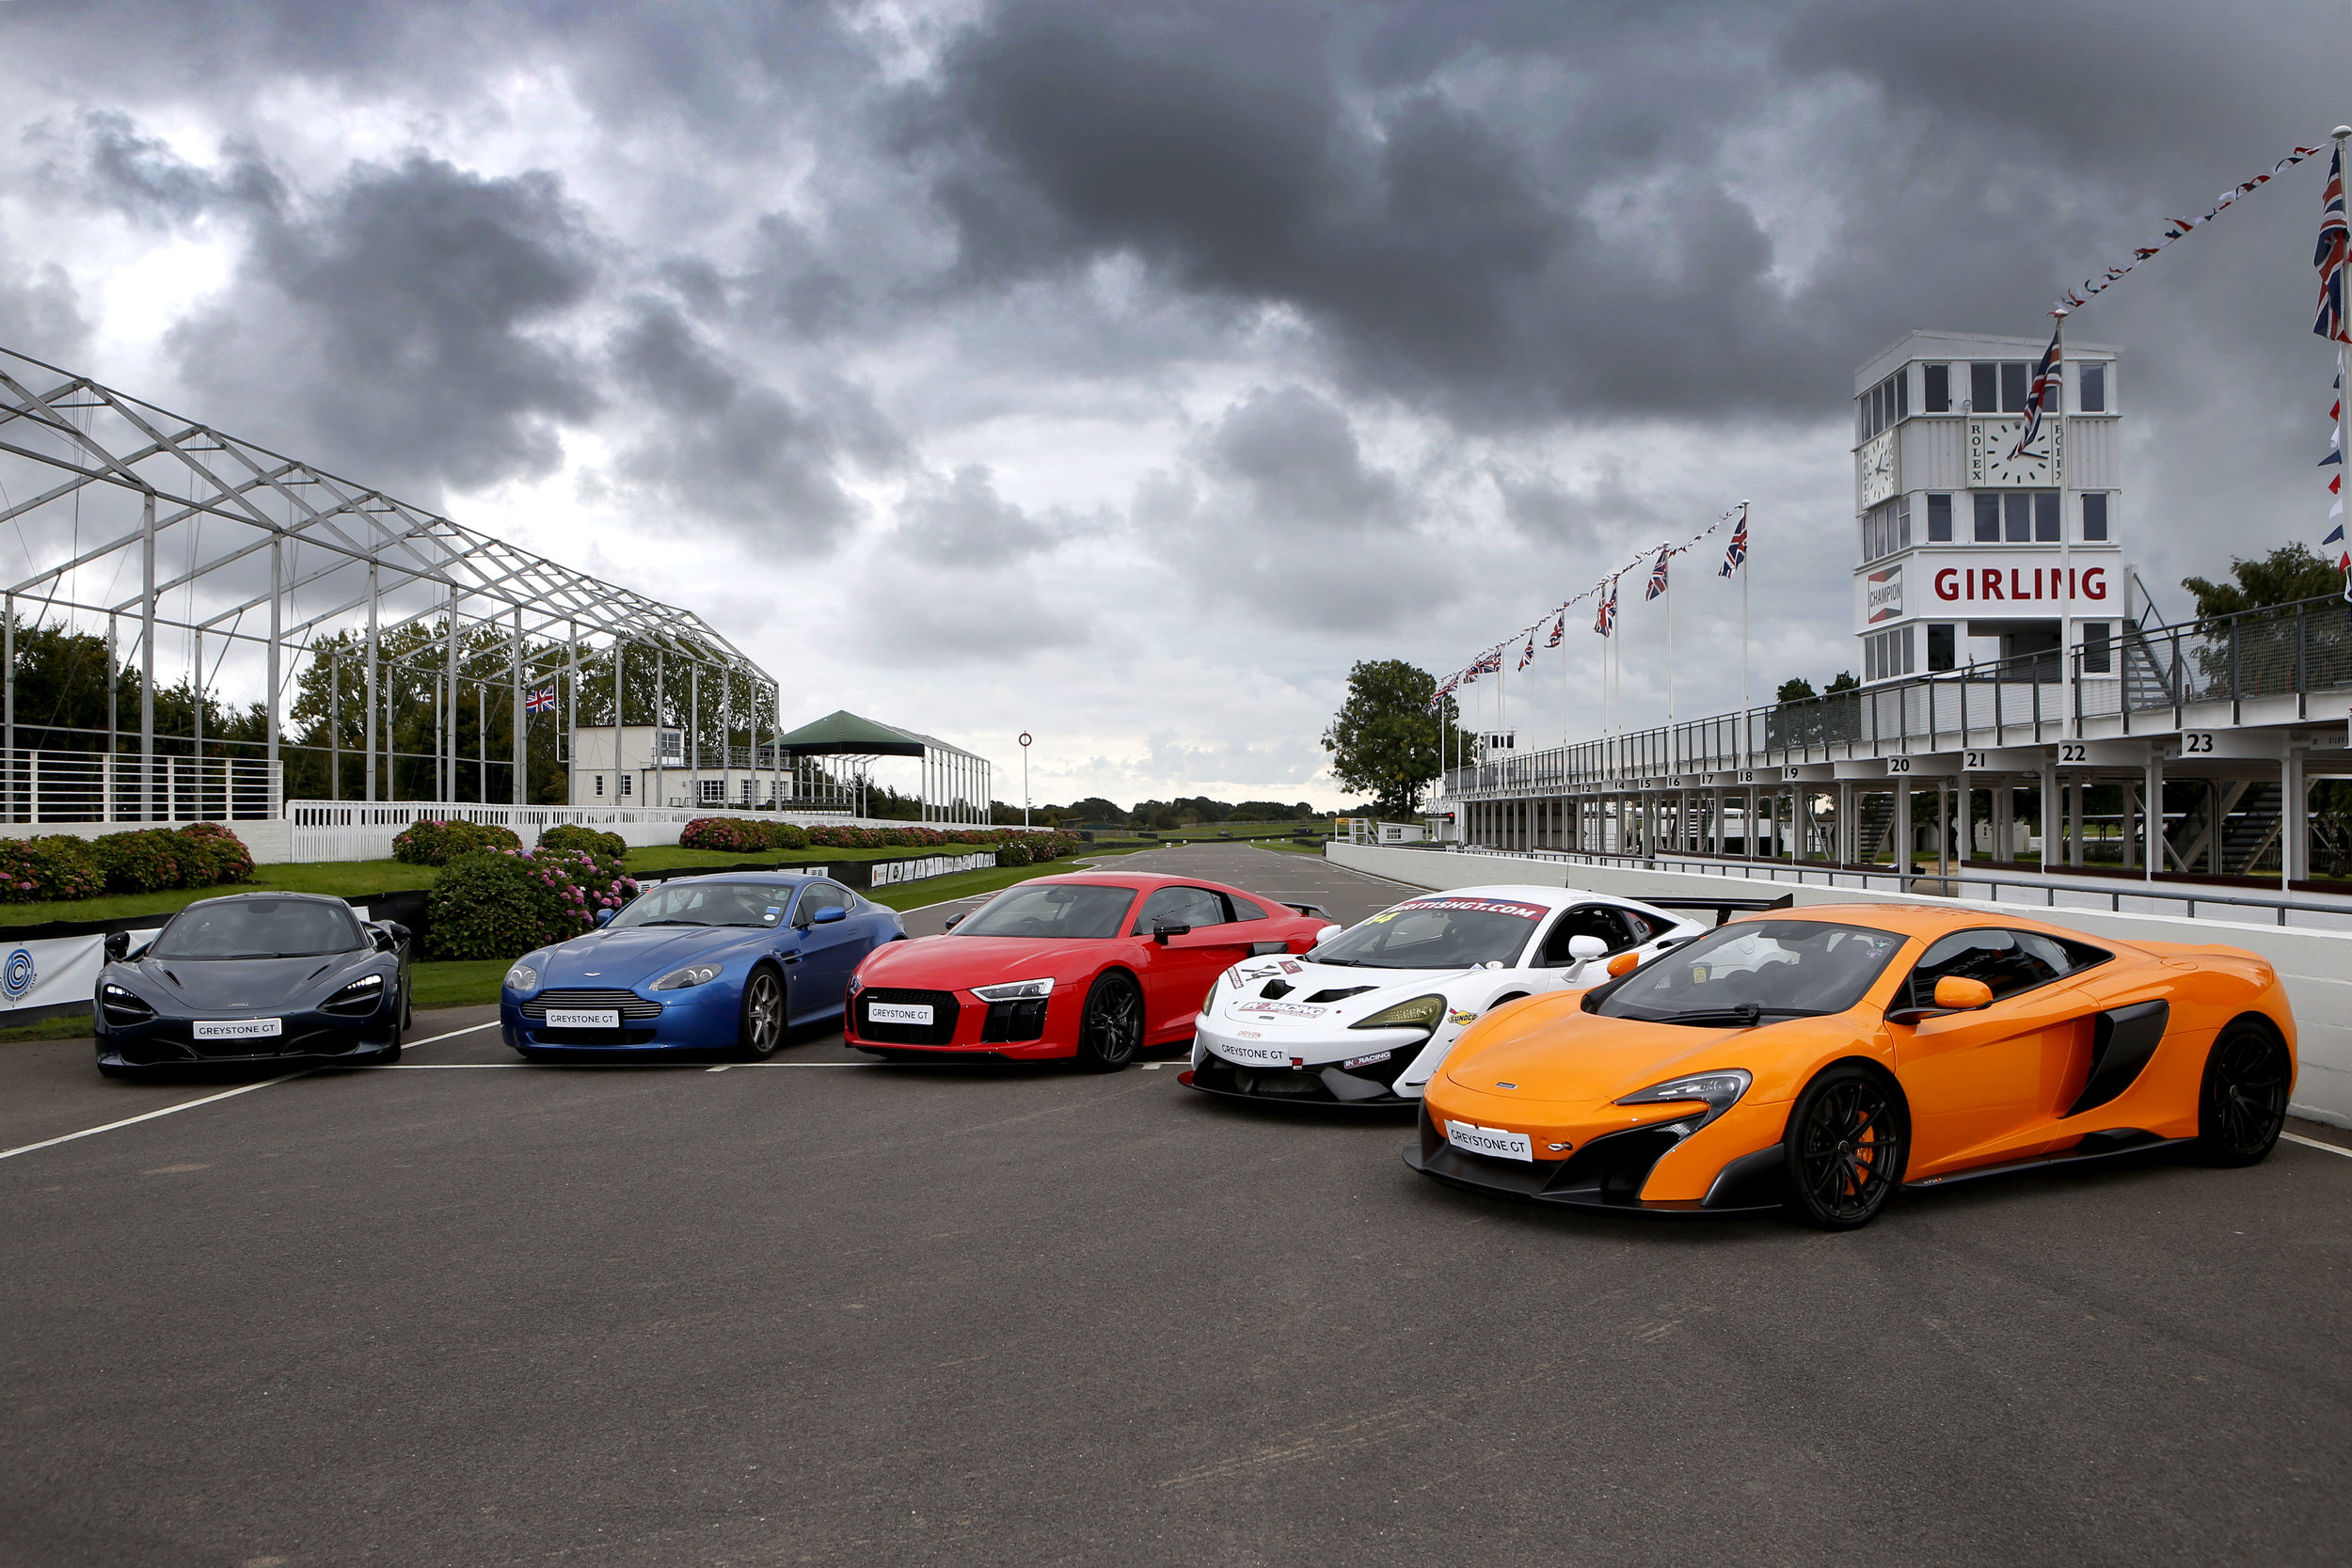 Goodwood returns to our calendar in 2019 by popular demand. Here's an image from our 2017 event